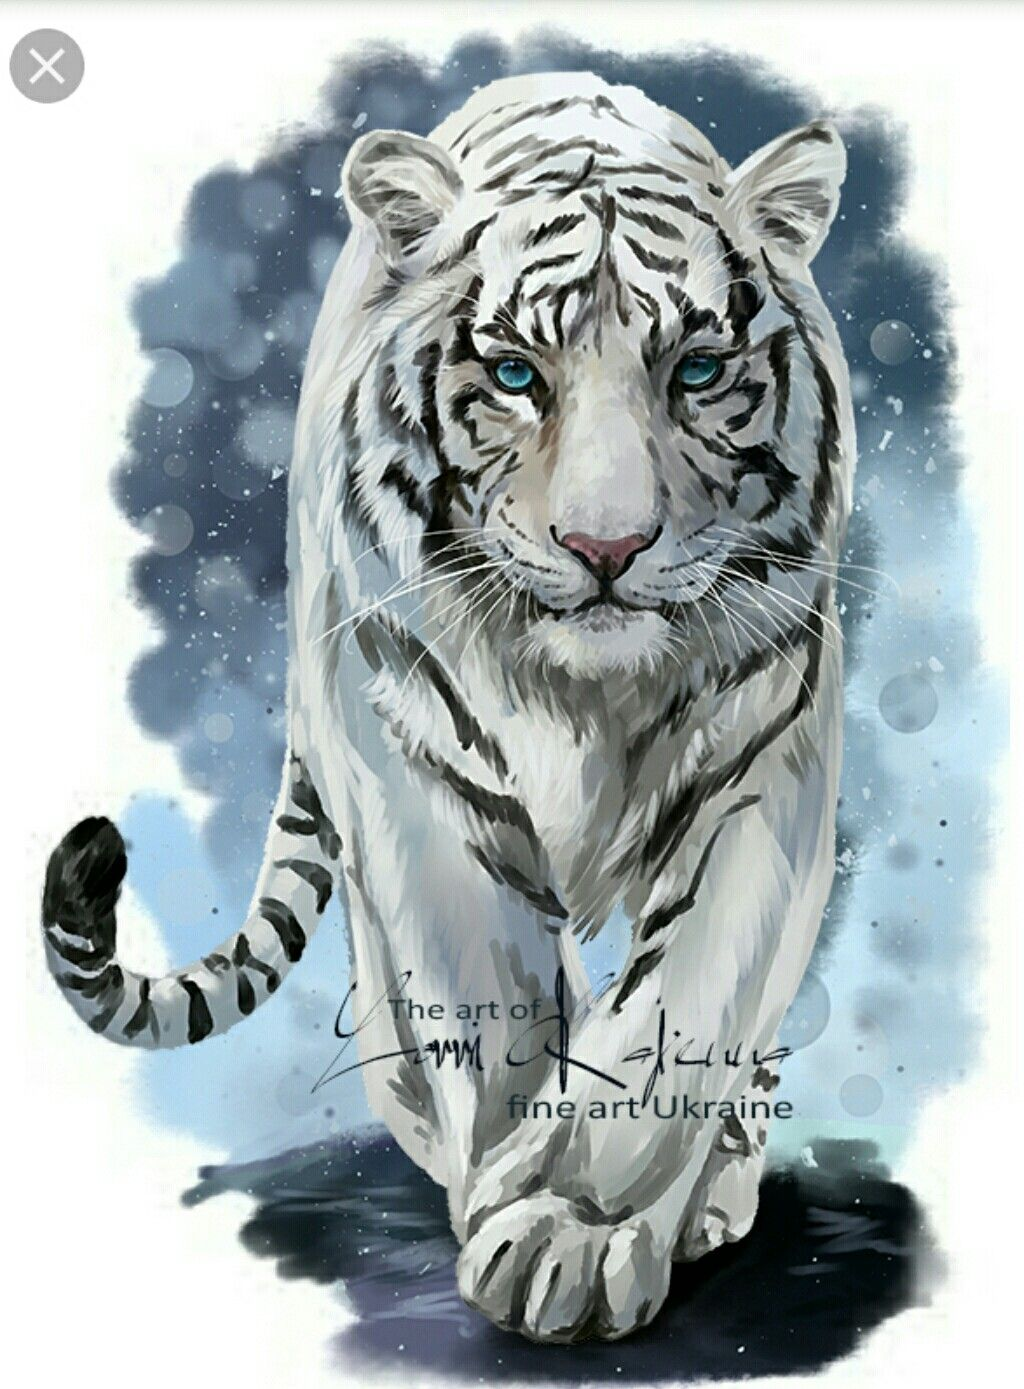 Pin By Rustam Regina On Tigry In 2020 Tiger Artwork Tiger Painting Tiger Pictures